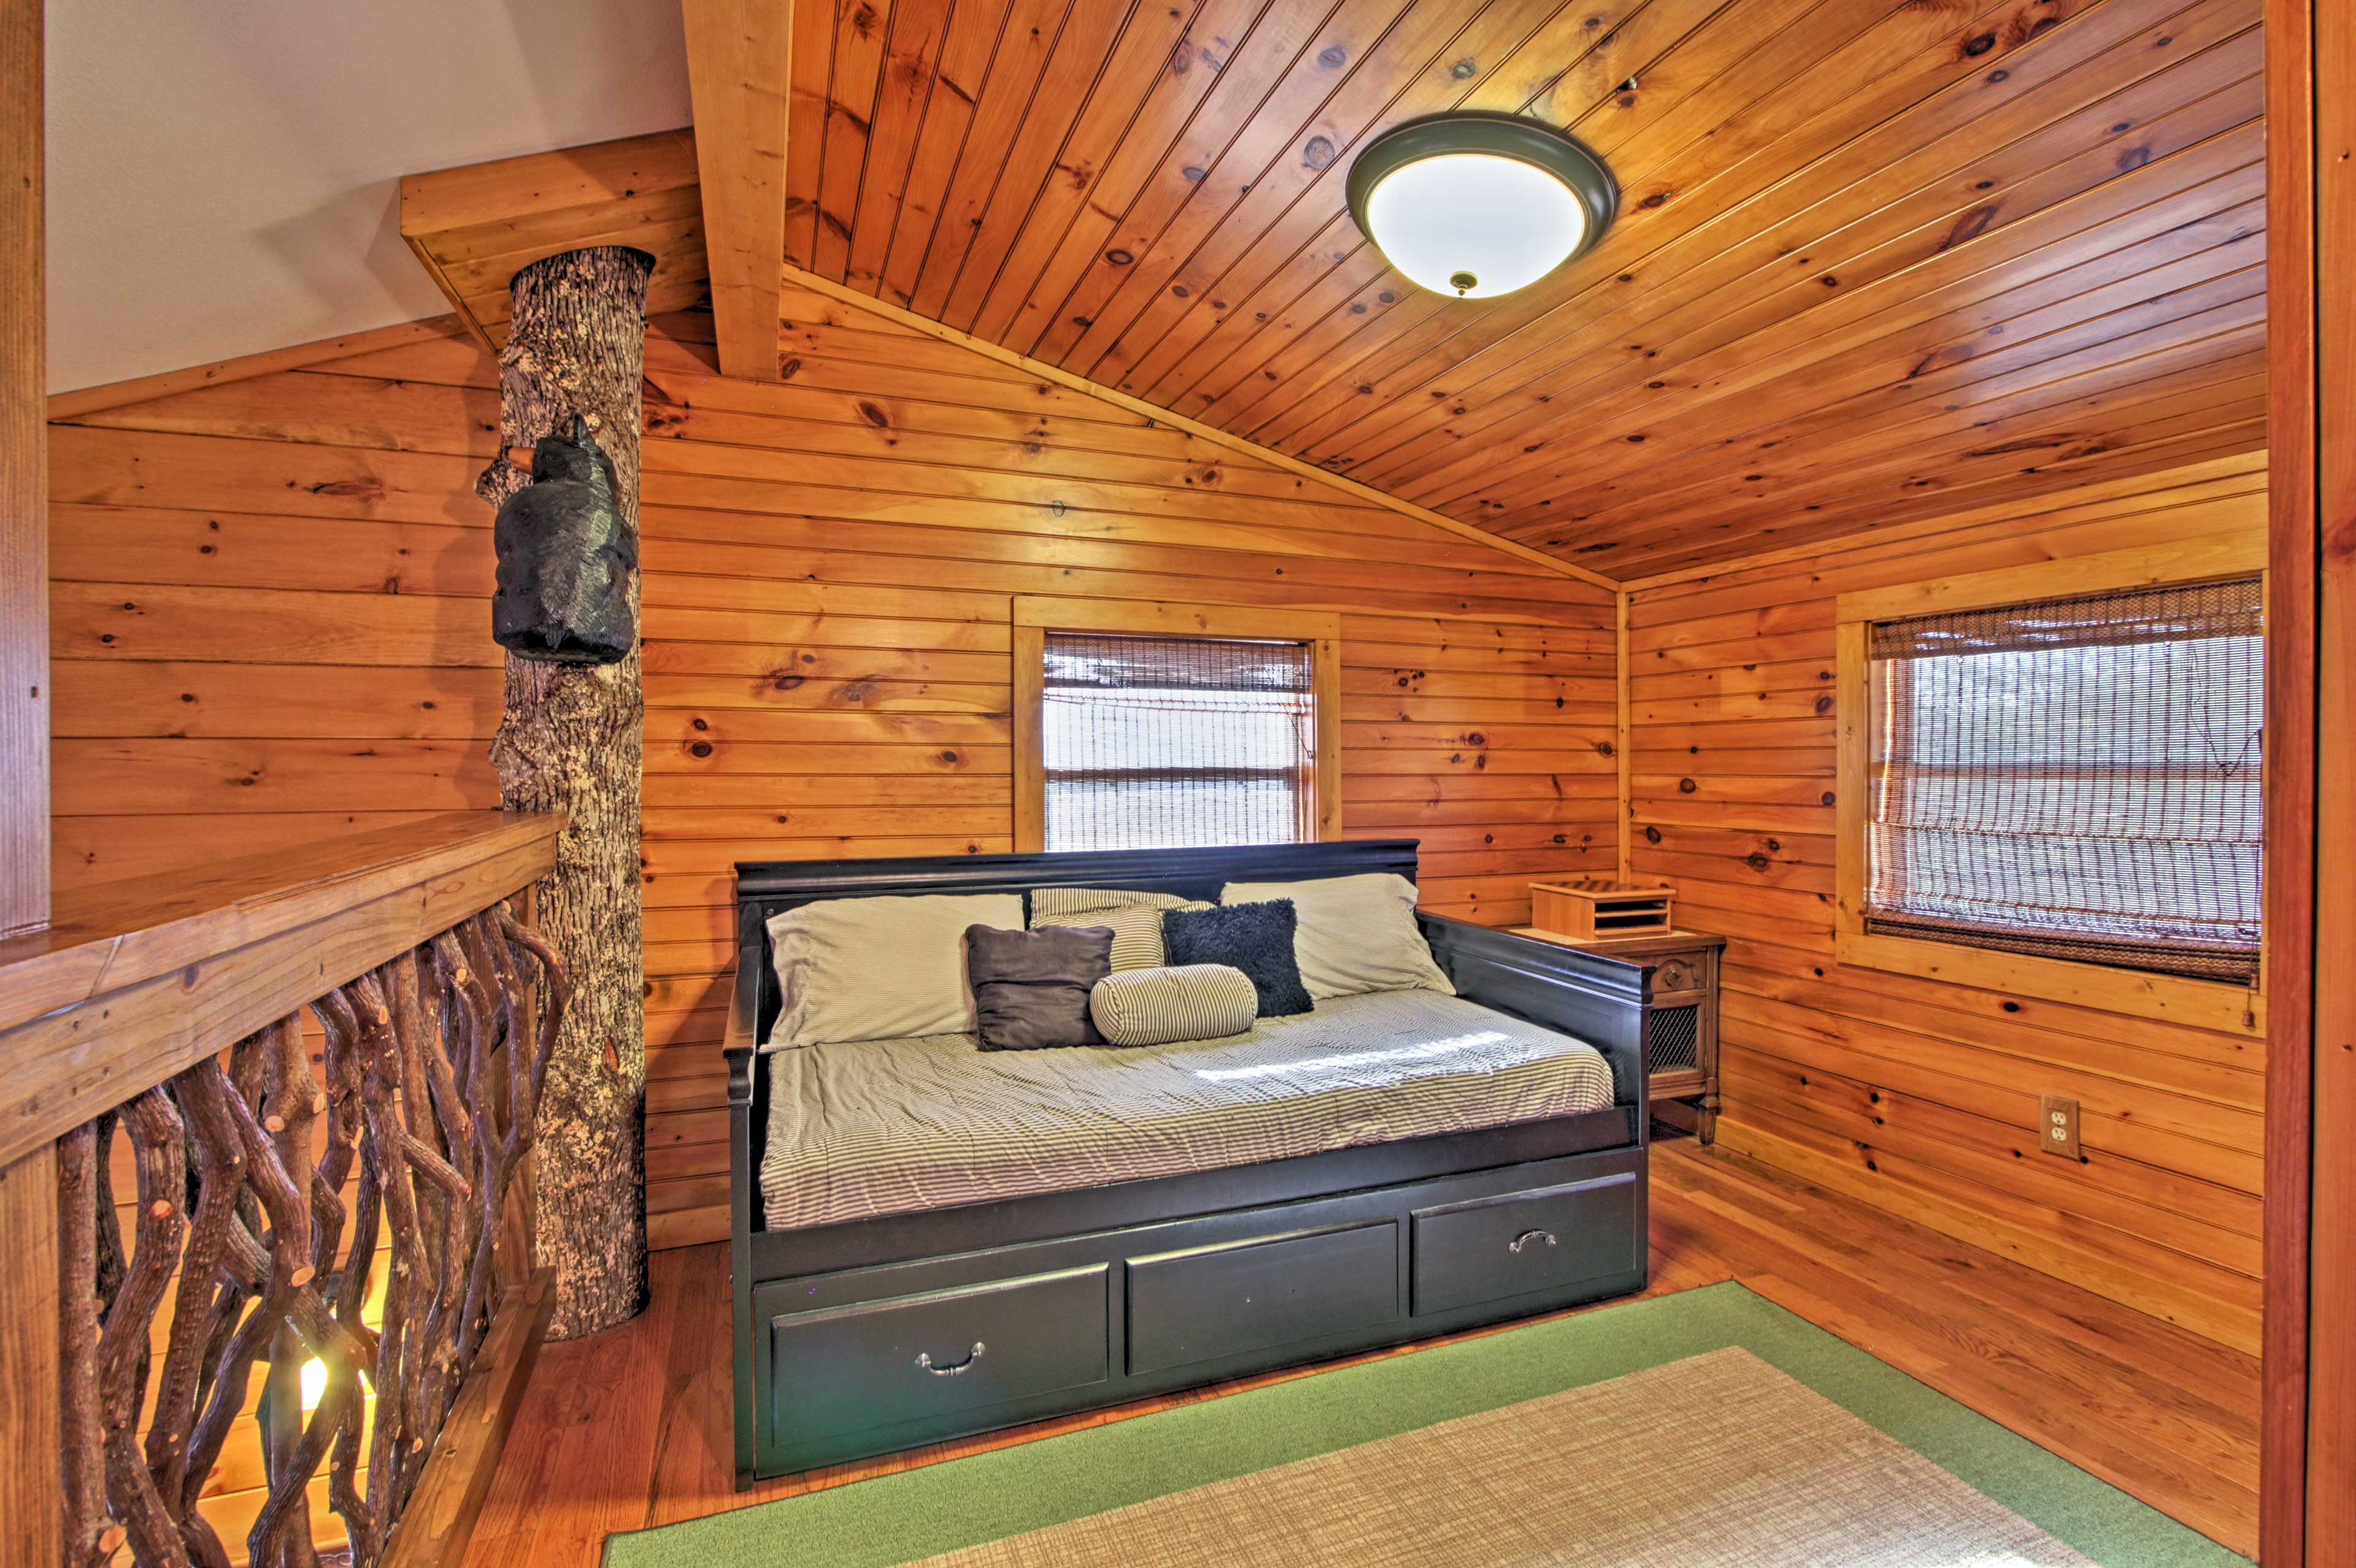 With a twin daybed and twin trundle, the loft sleeps 2.